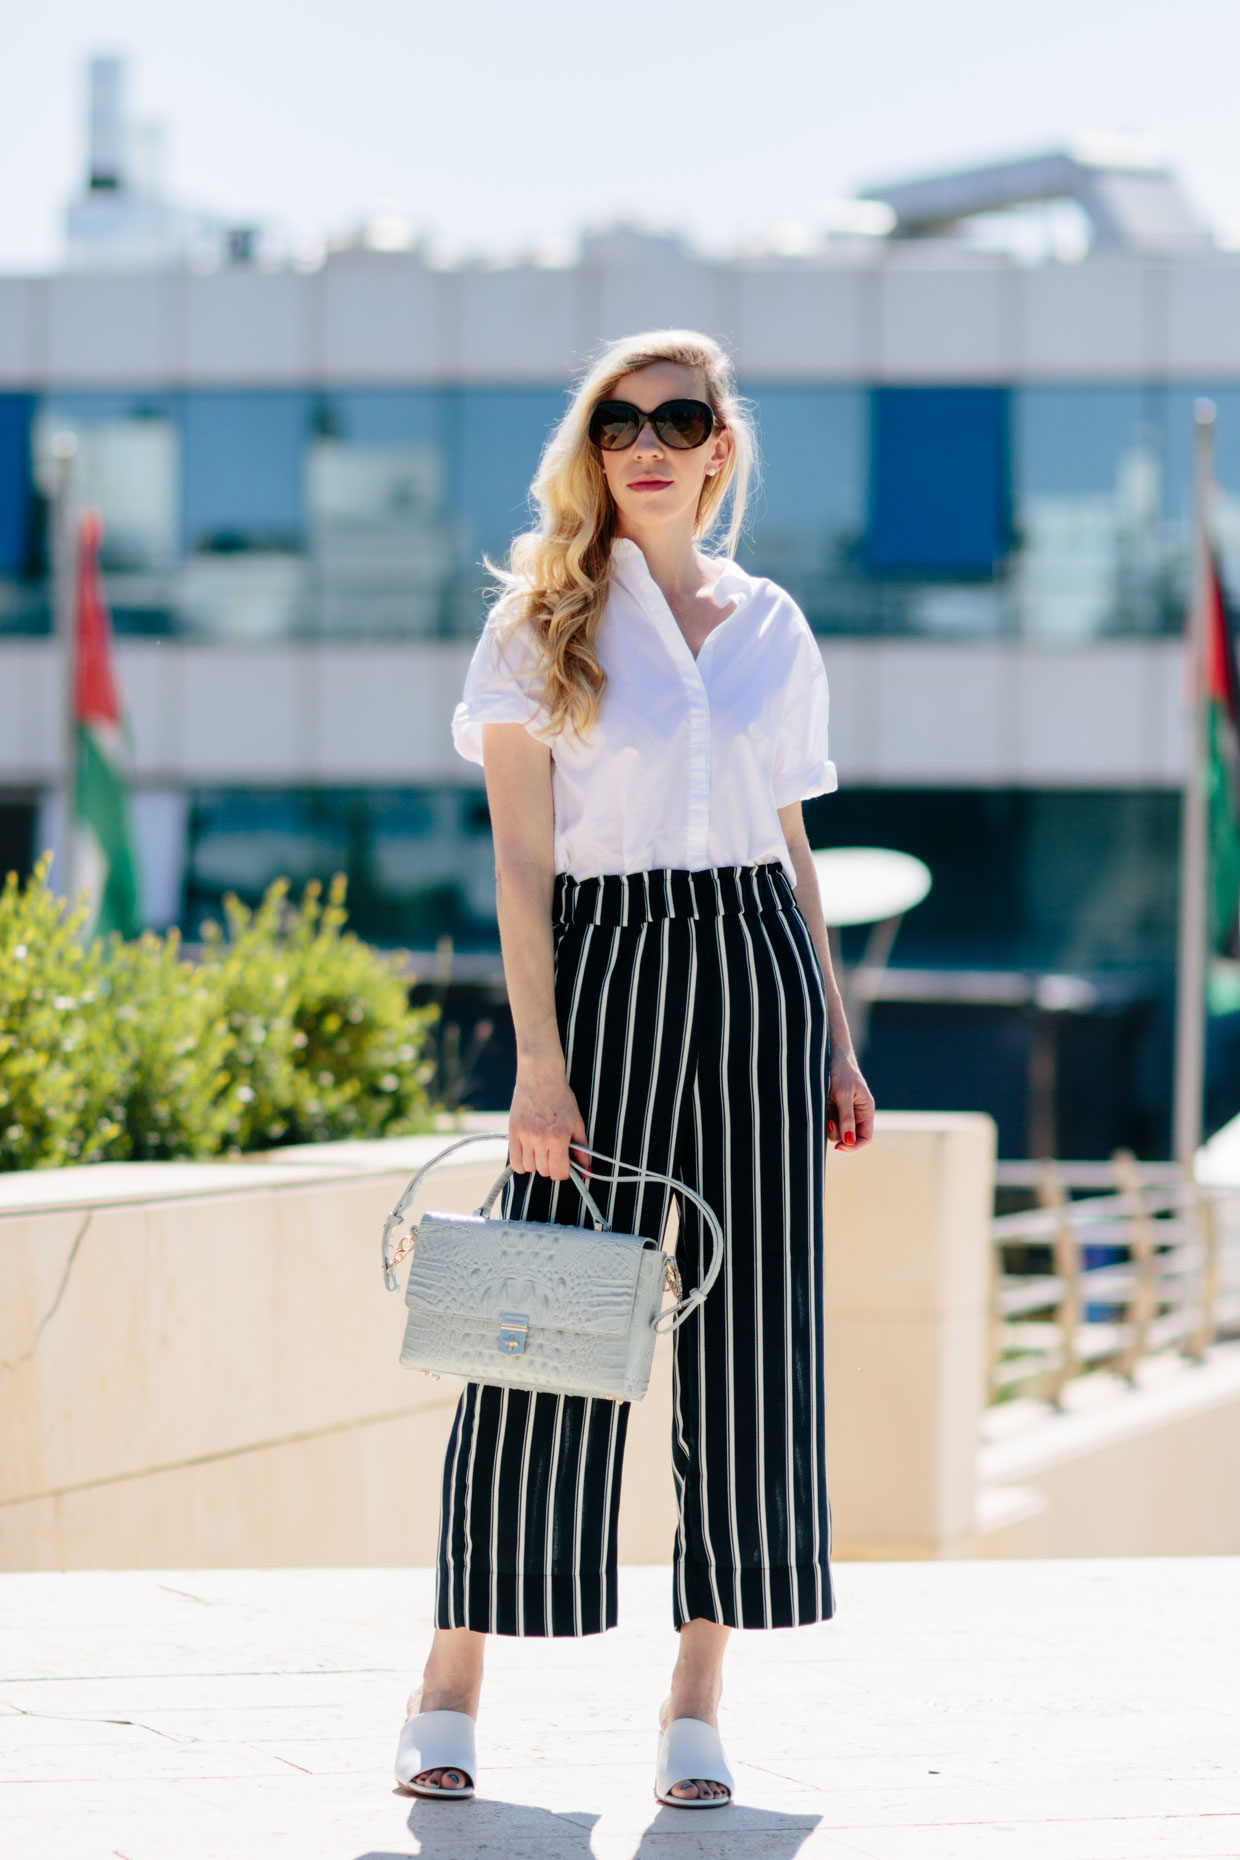 Striped Pants for Summer